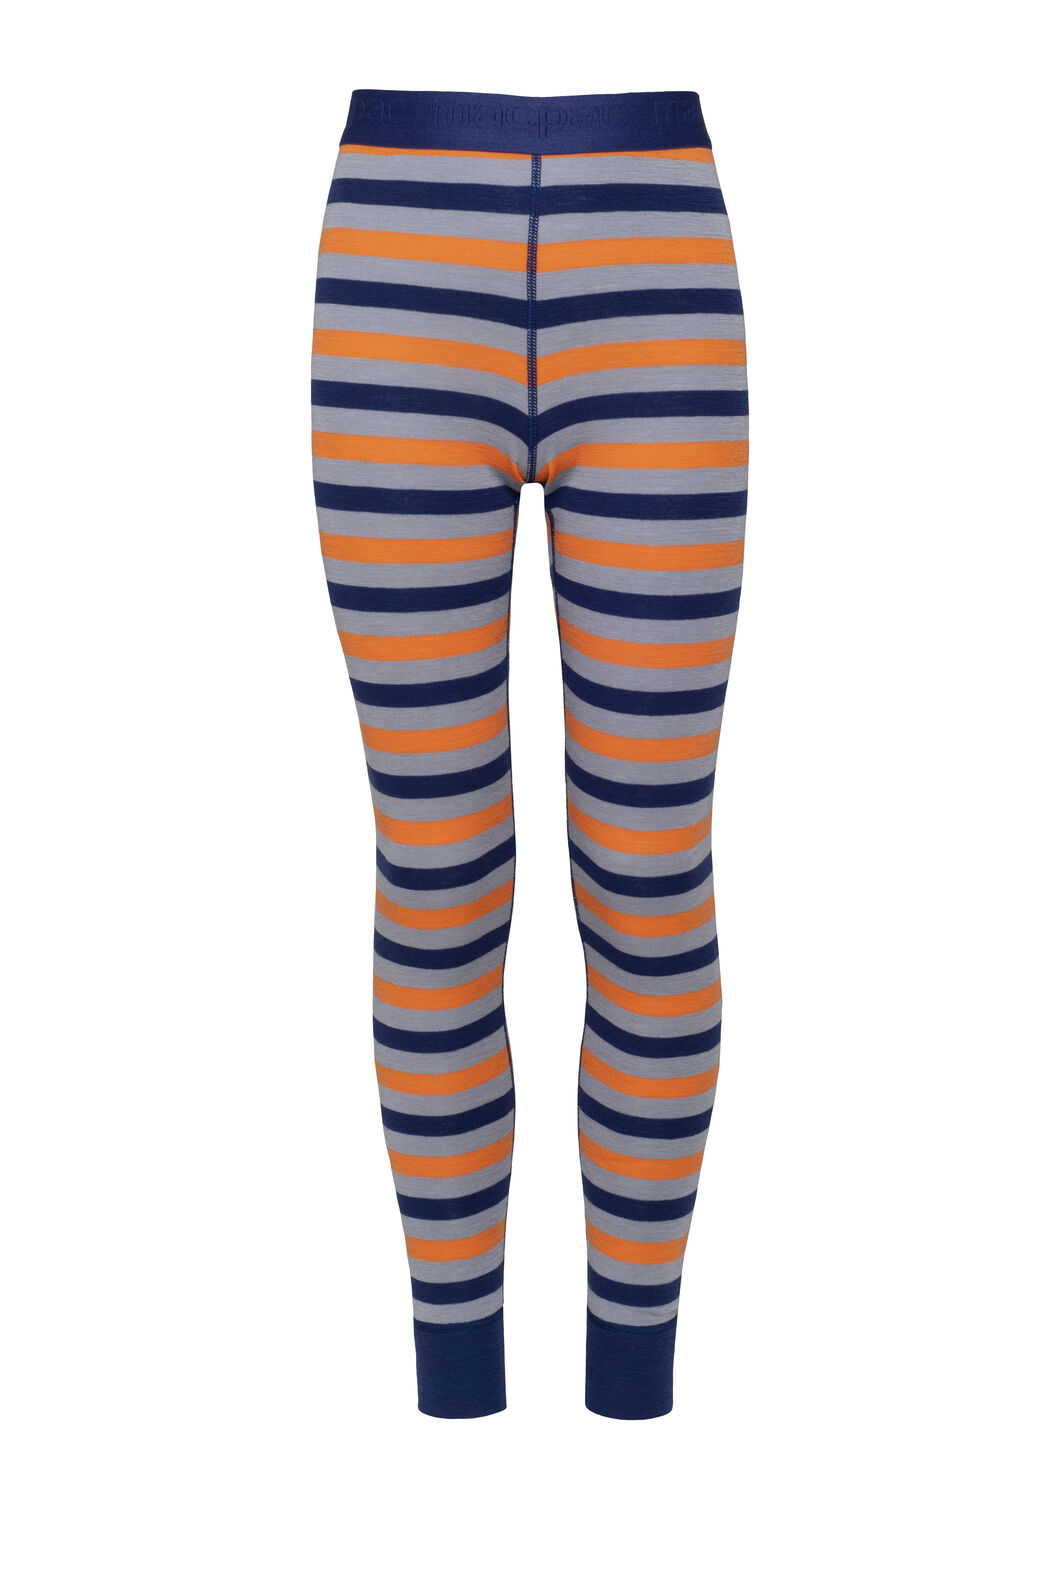 Macpac 220 Merino Long Johns — Kids', Blueprint Stripe, hi-res